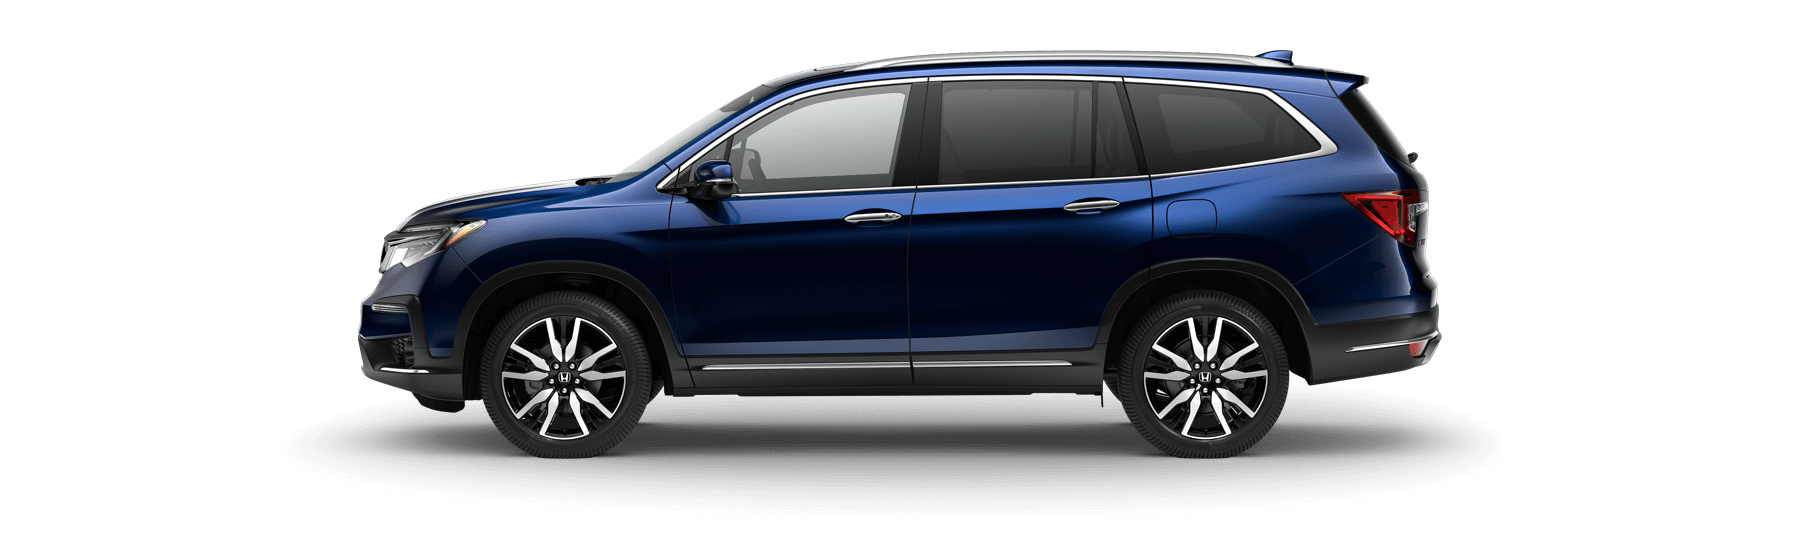 Everyday Adventures 2019 Honda Pilot Side Profile